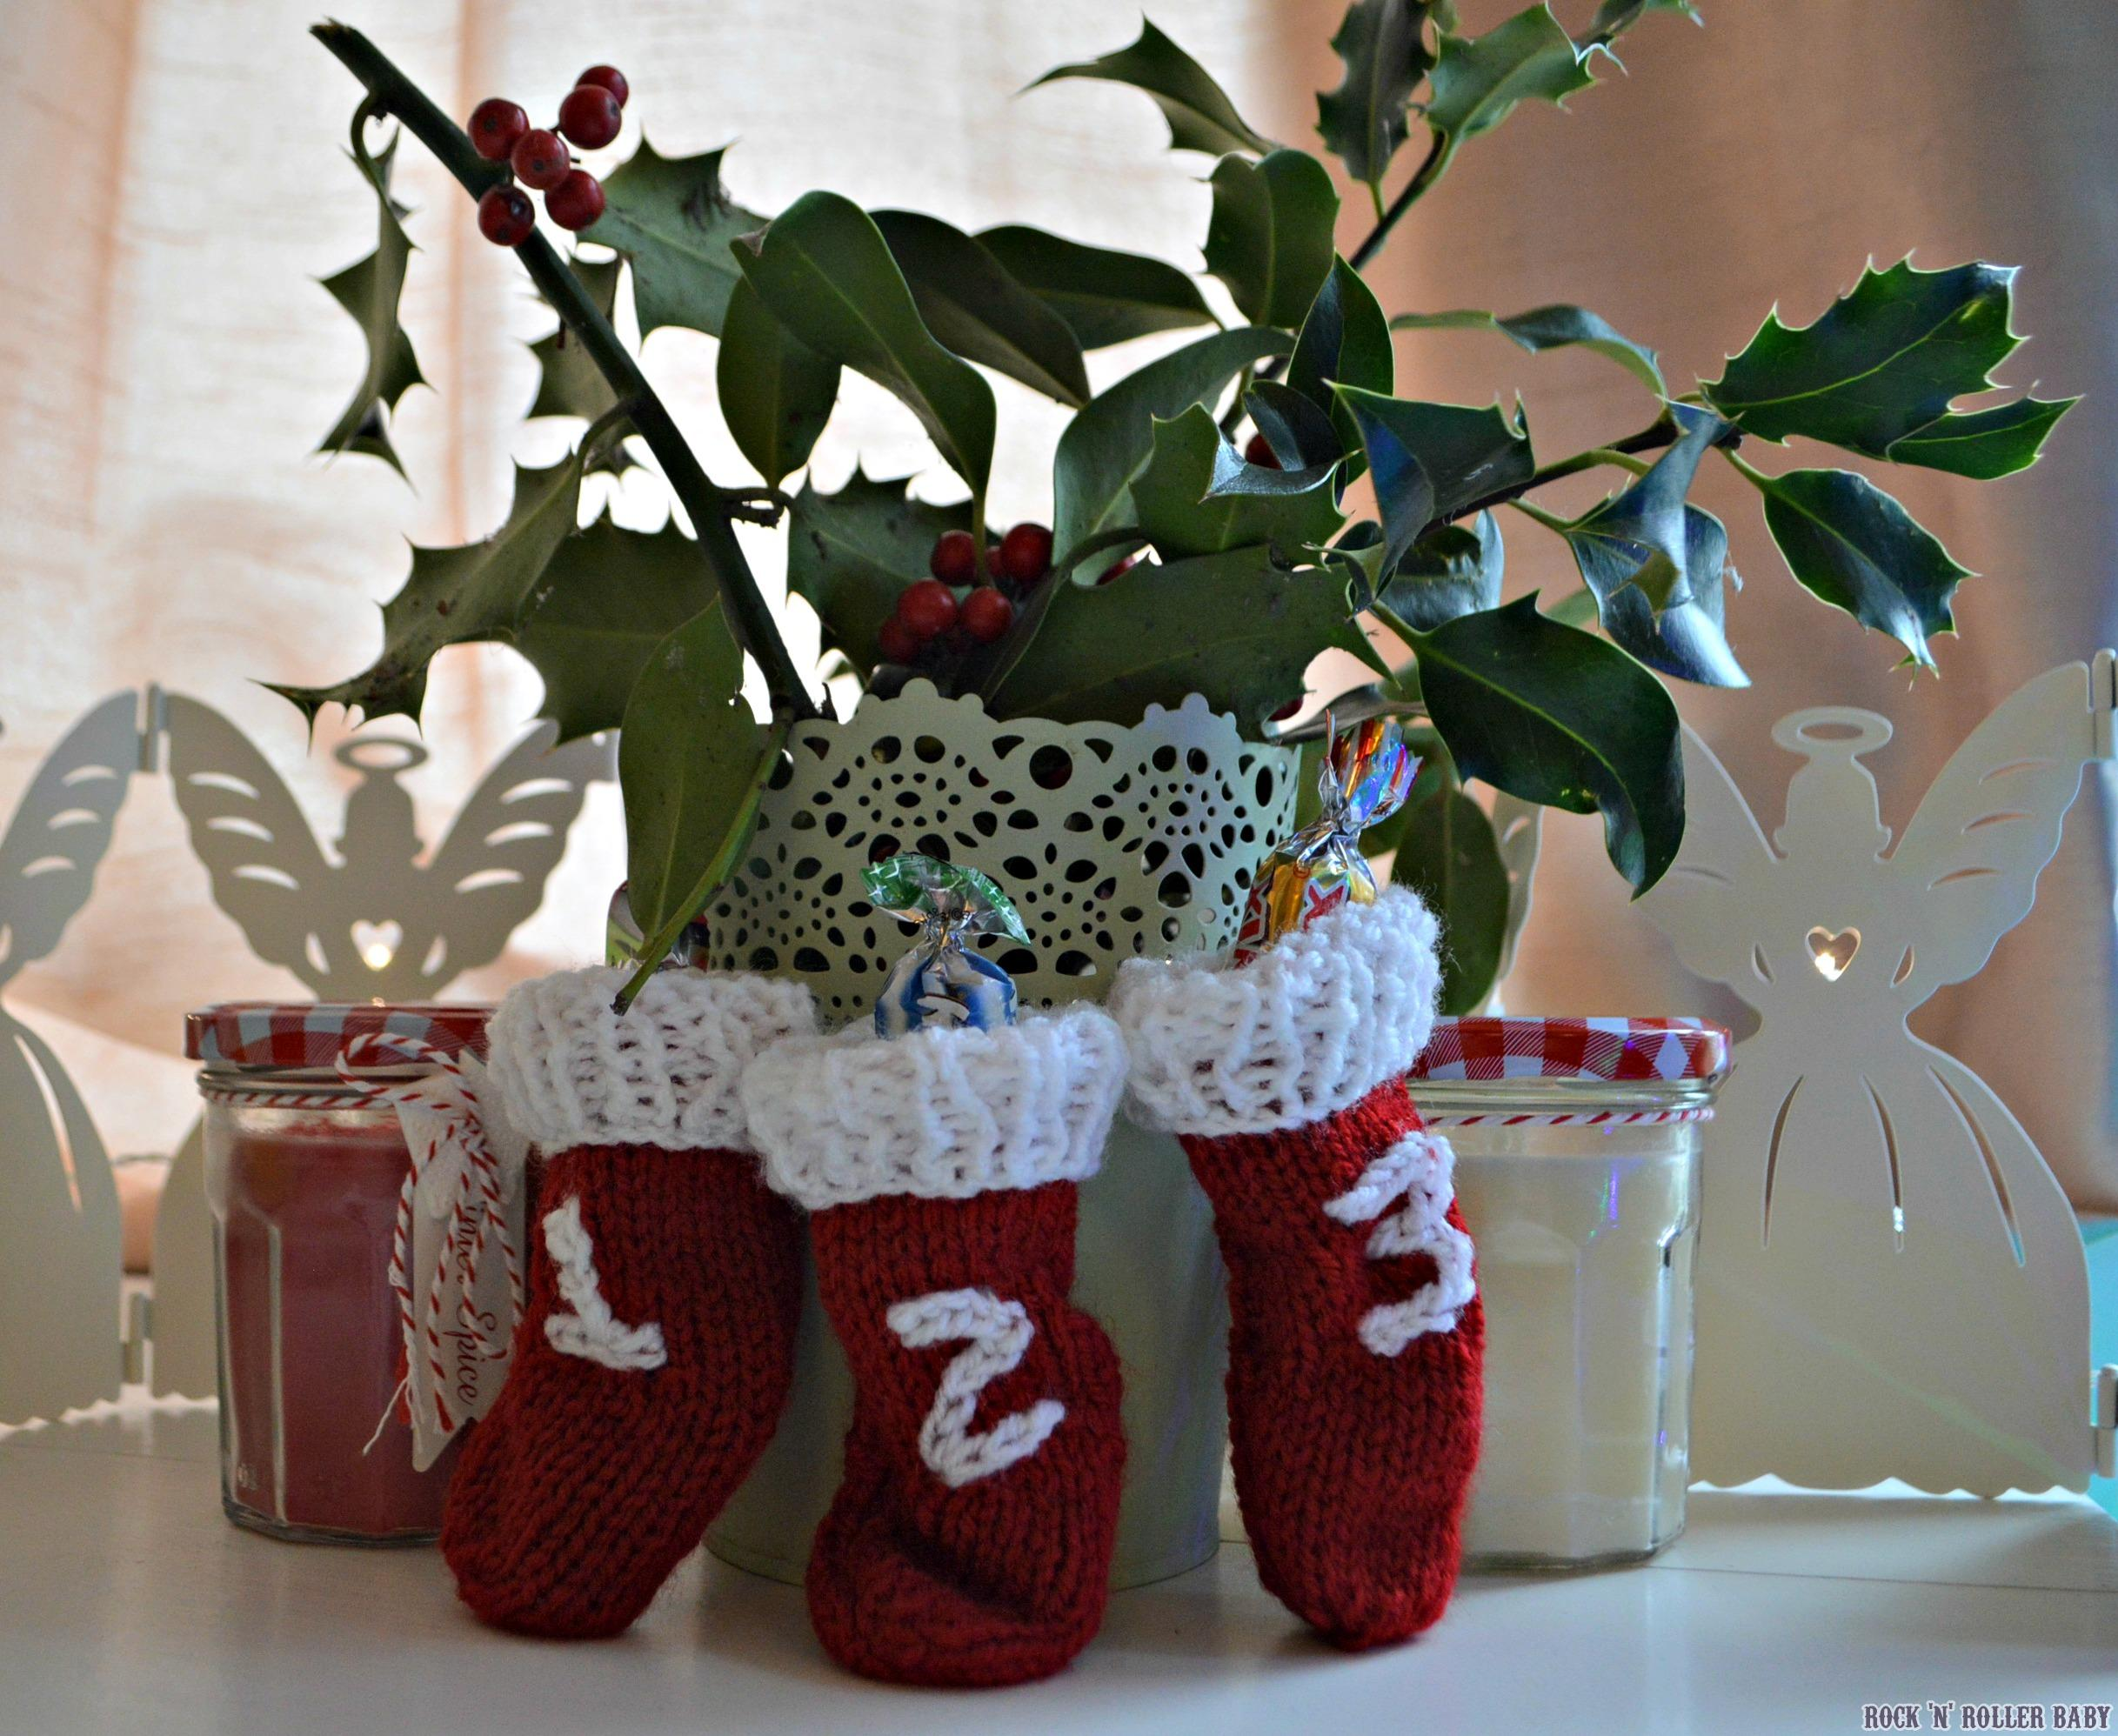 Knitting Pattern For Mini Christmas Stocking : Mini Christmas Stockings   FREE Knitting Pattern ...